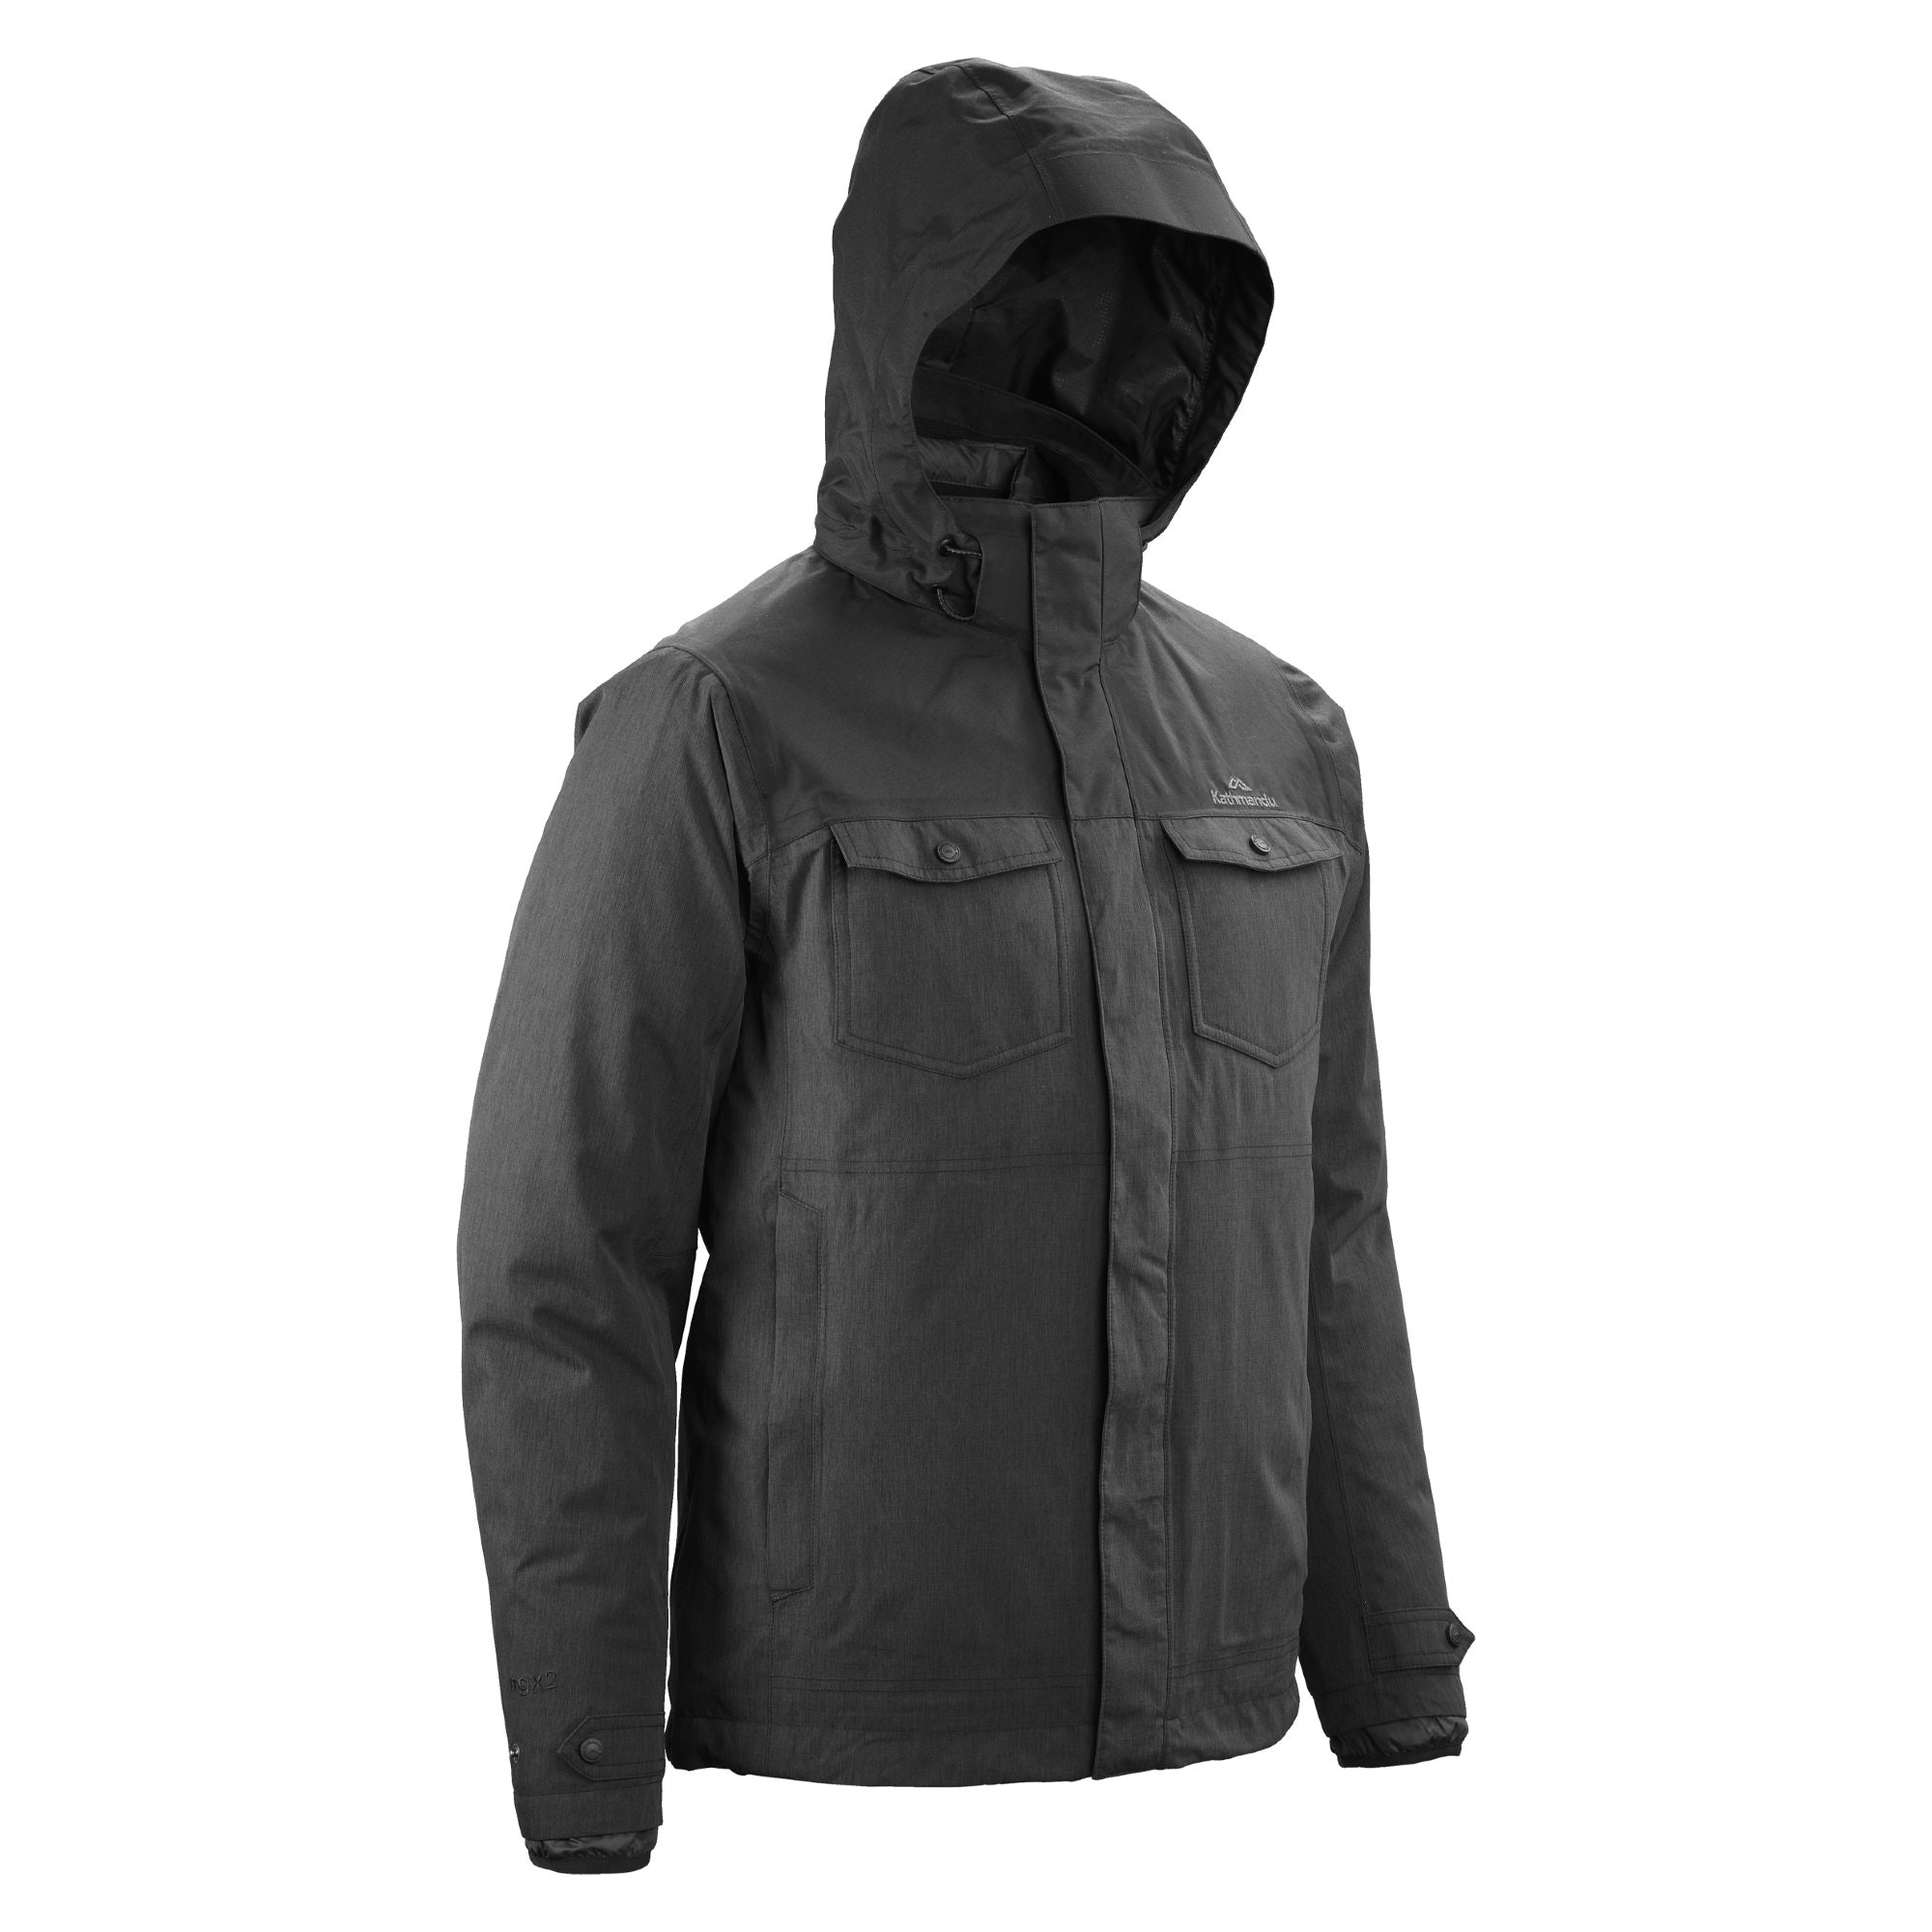 Kathmandu-Talas-Mens-Waterproof-Windproof-3-in-1-Winter-Down-Coat-Hooded-Jacket